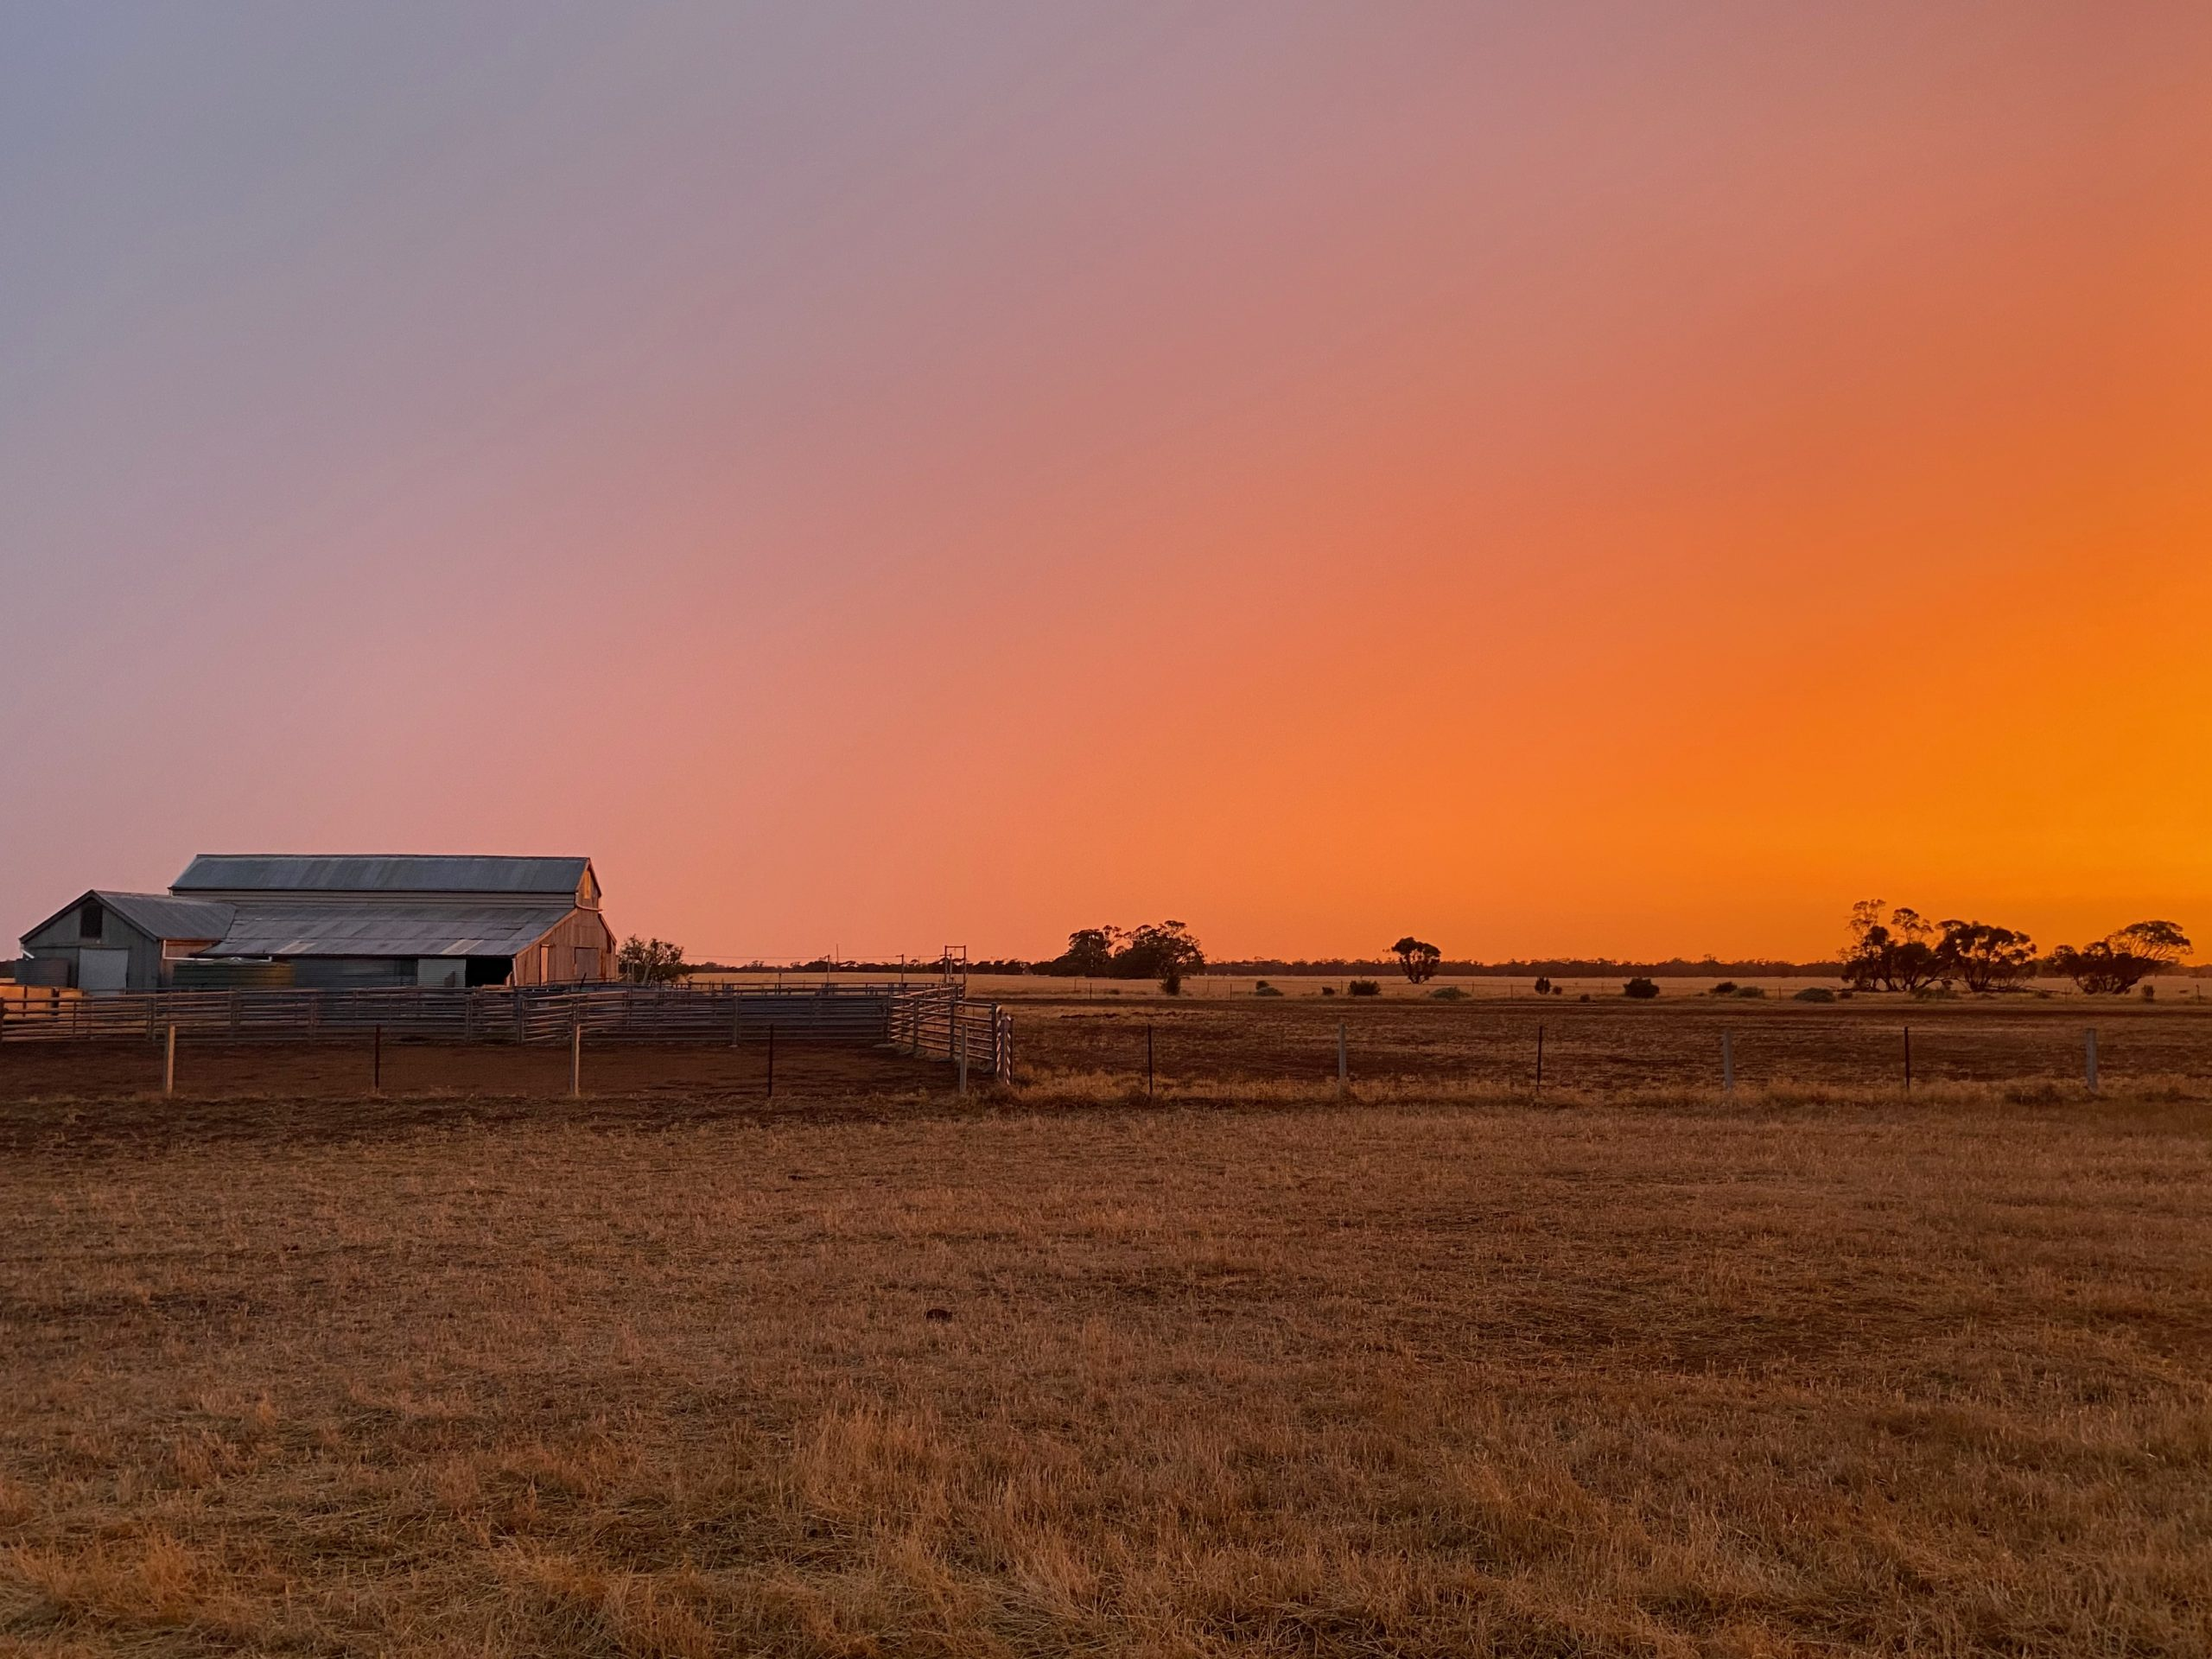 Budget a missed opportunity for rural Australians